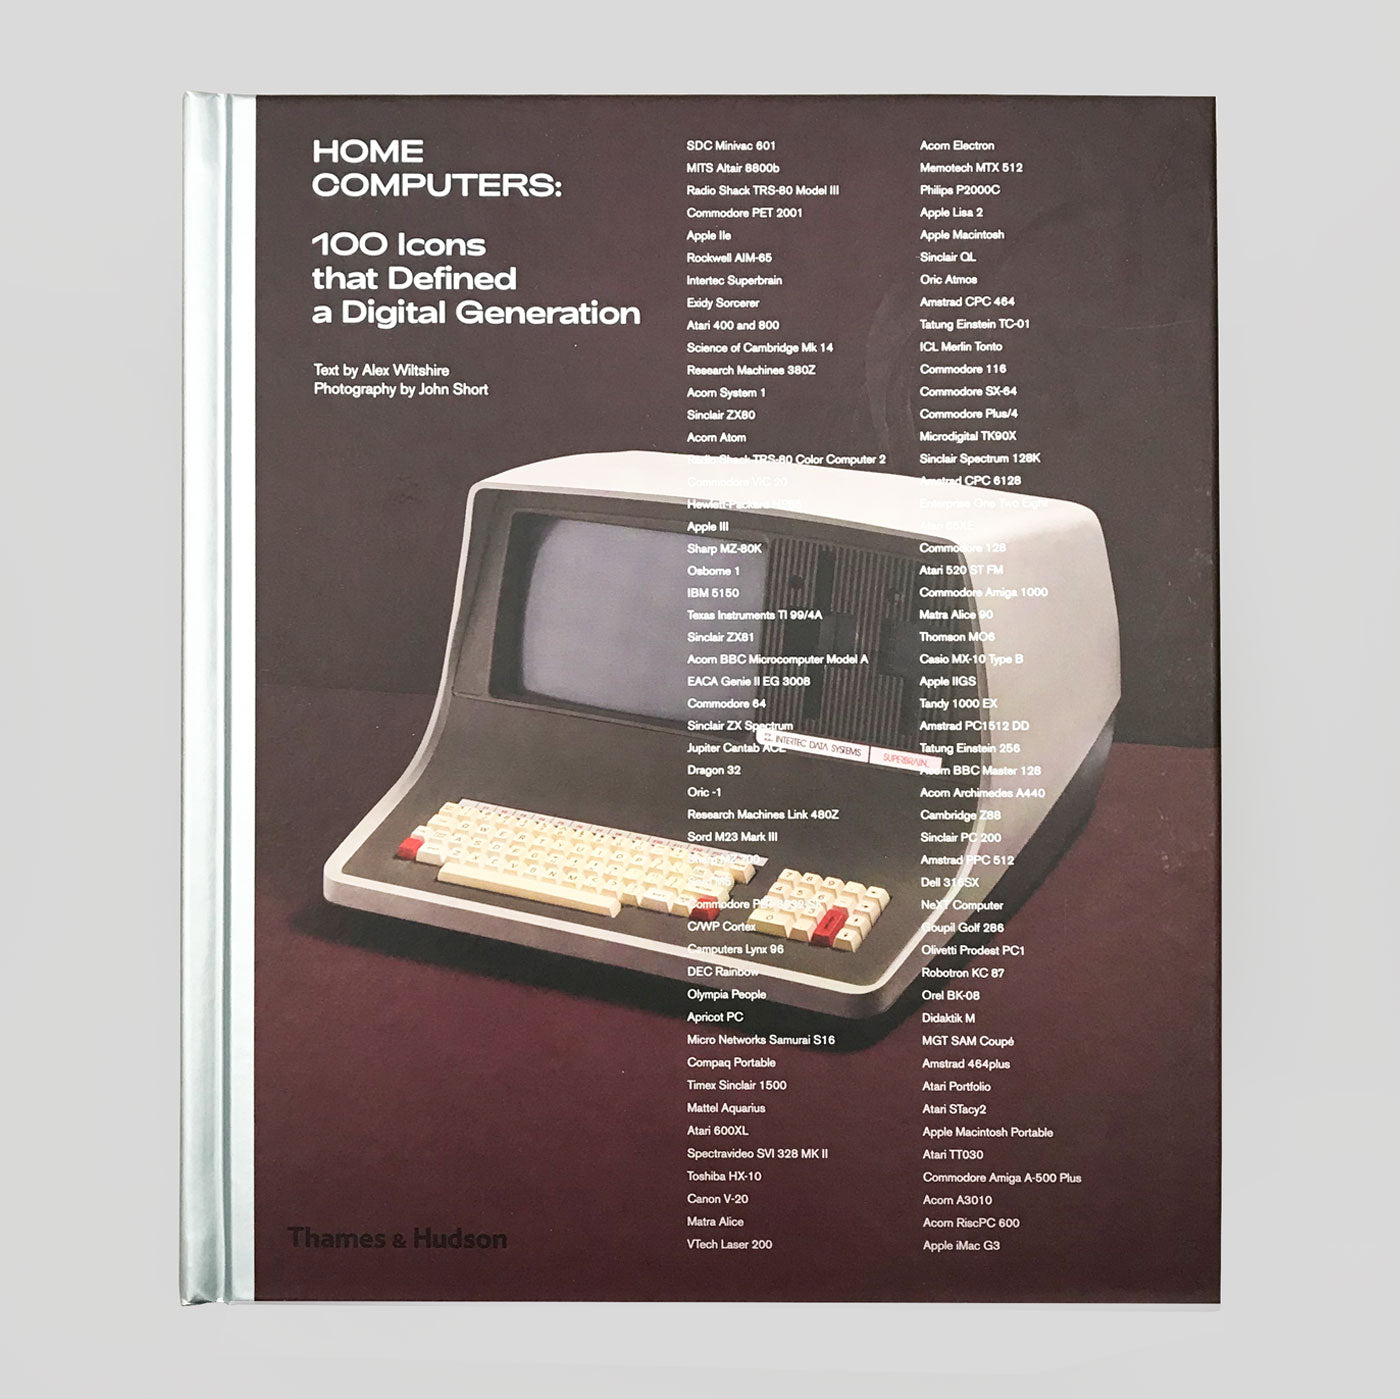 Home Computers: 100 Icons that Defined a Digital Generation | Colours May Vary